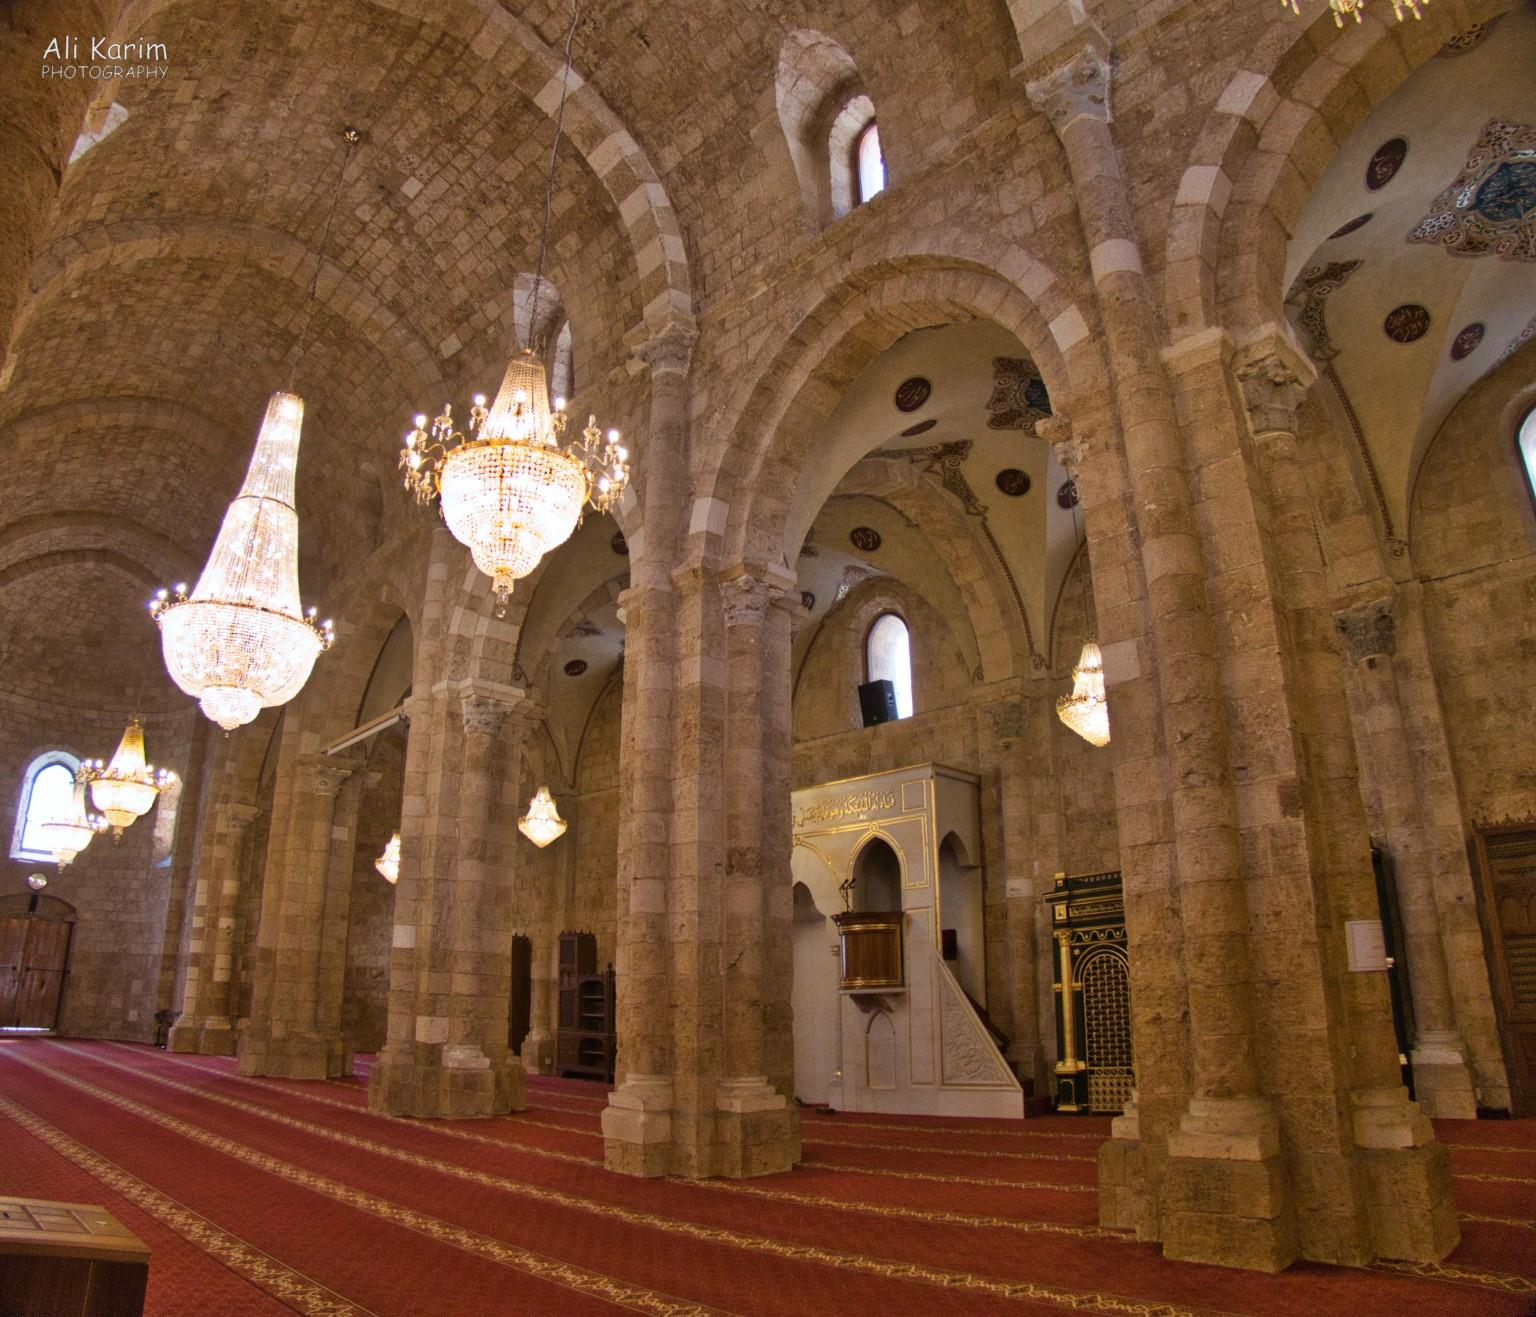 Beirut Al-Omari Grand Mosque, with a lot of history